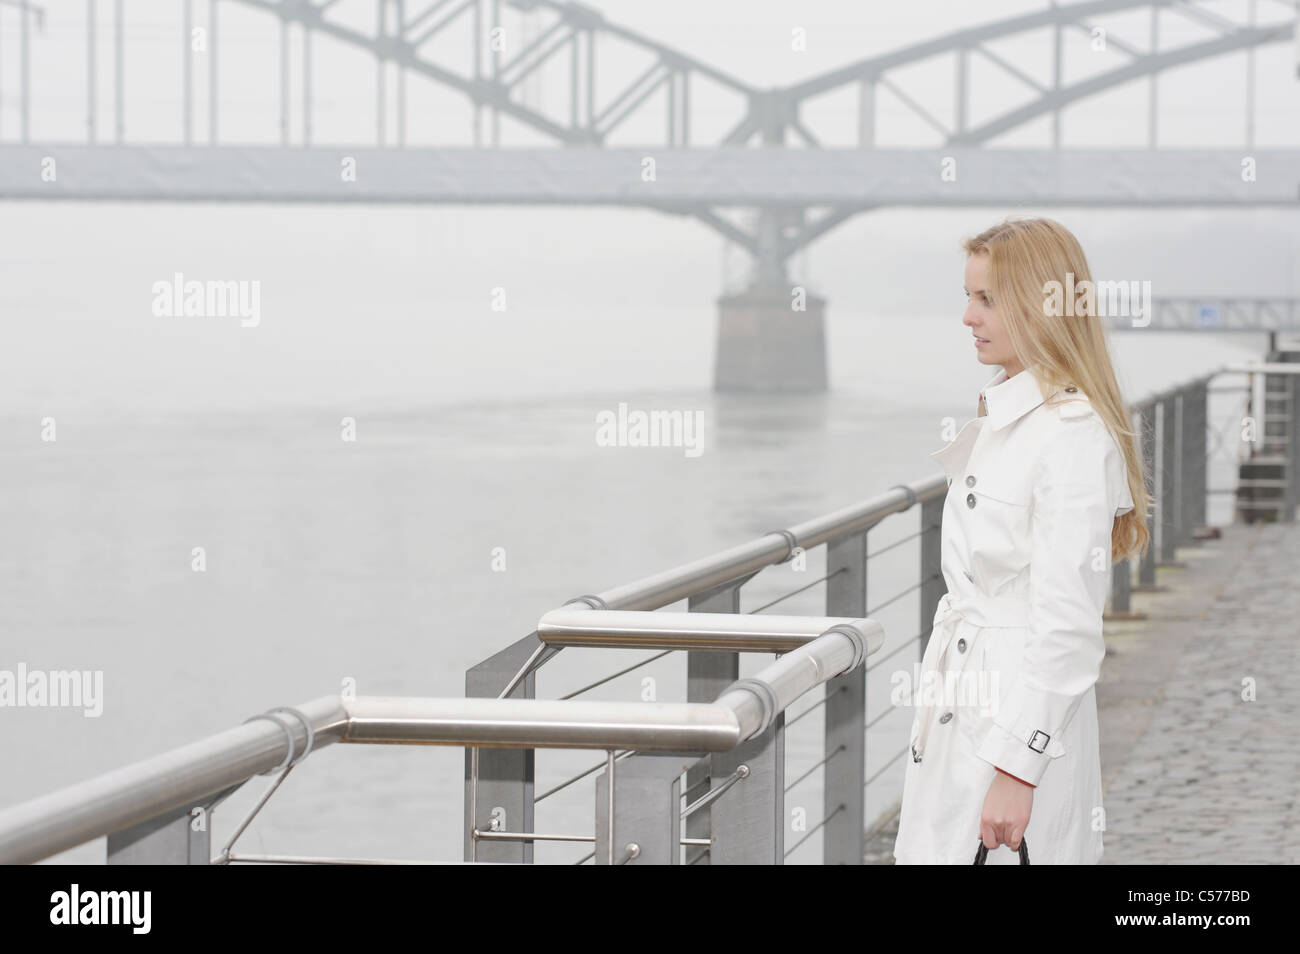 Woman overlooking city river - Stock Image